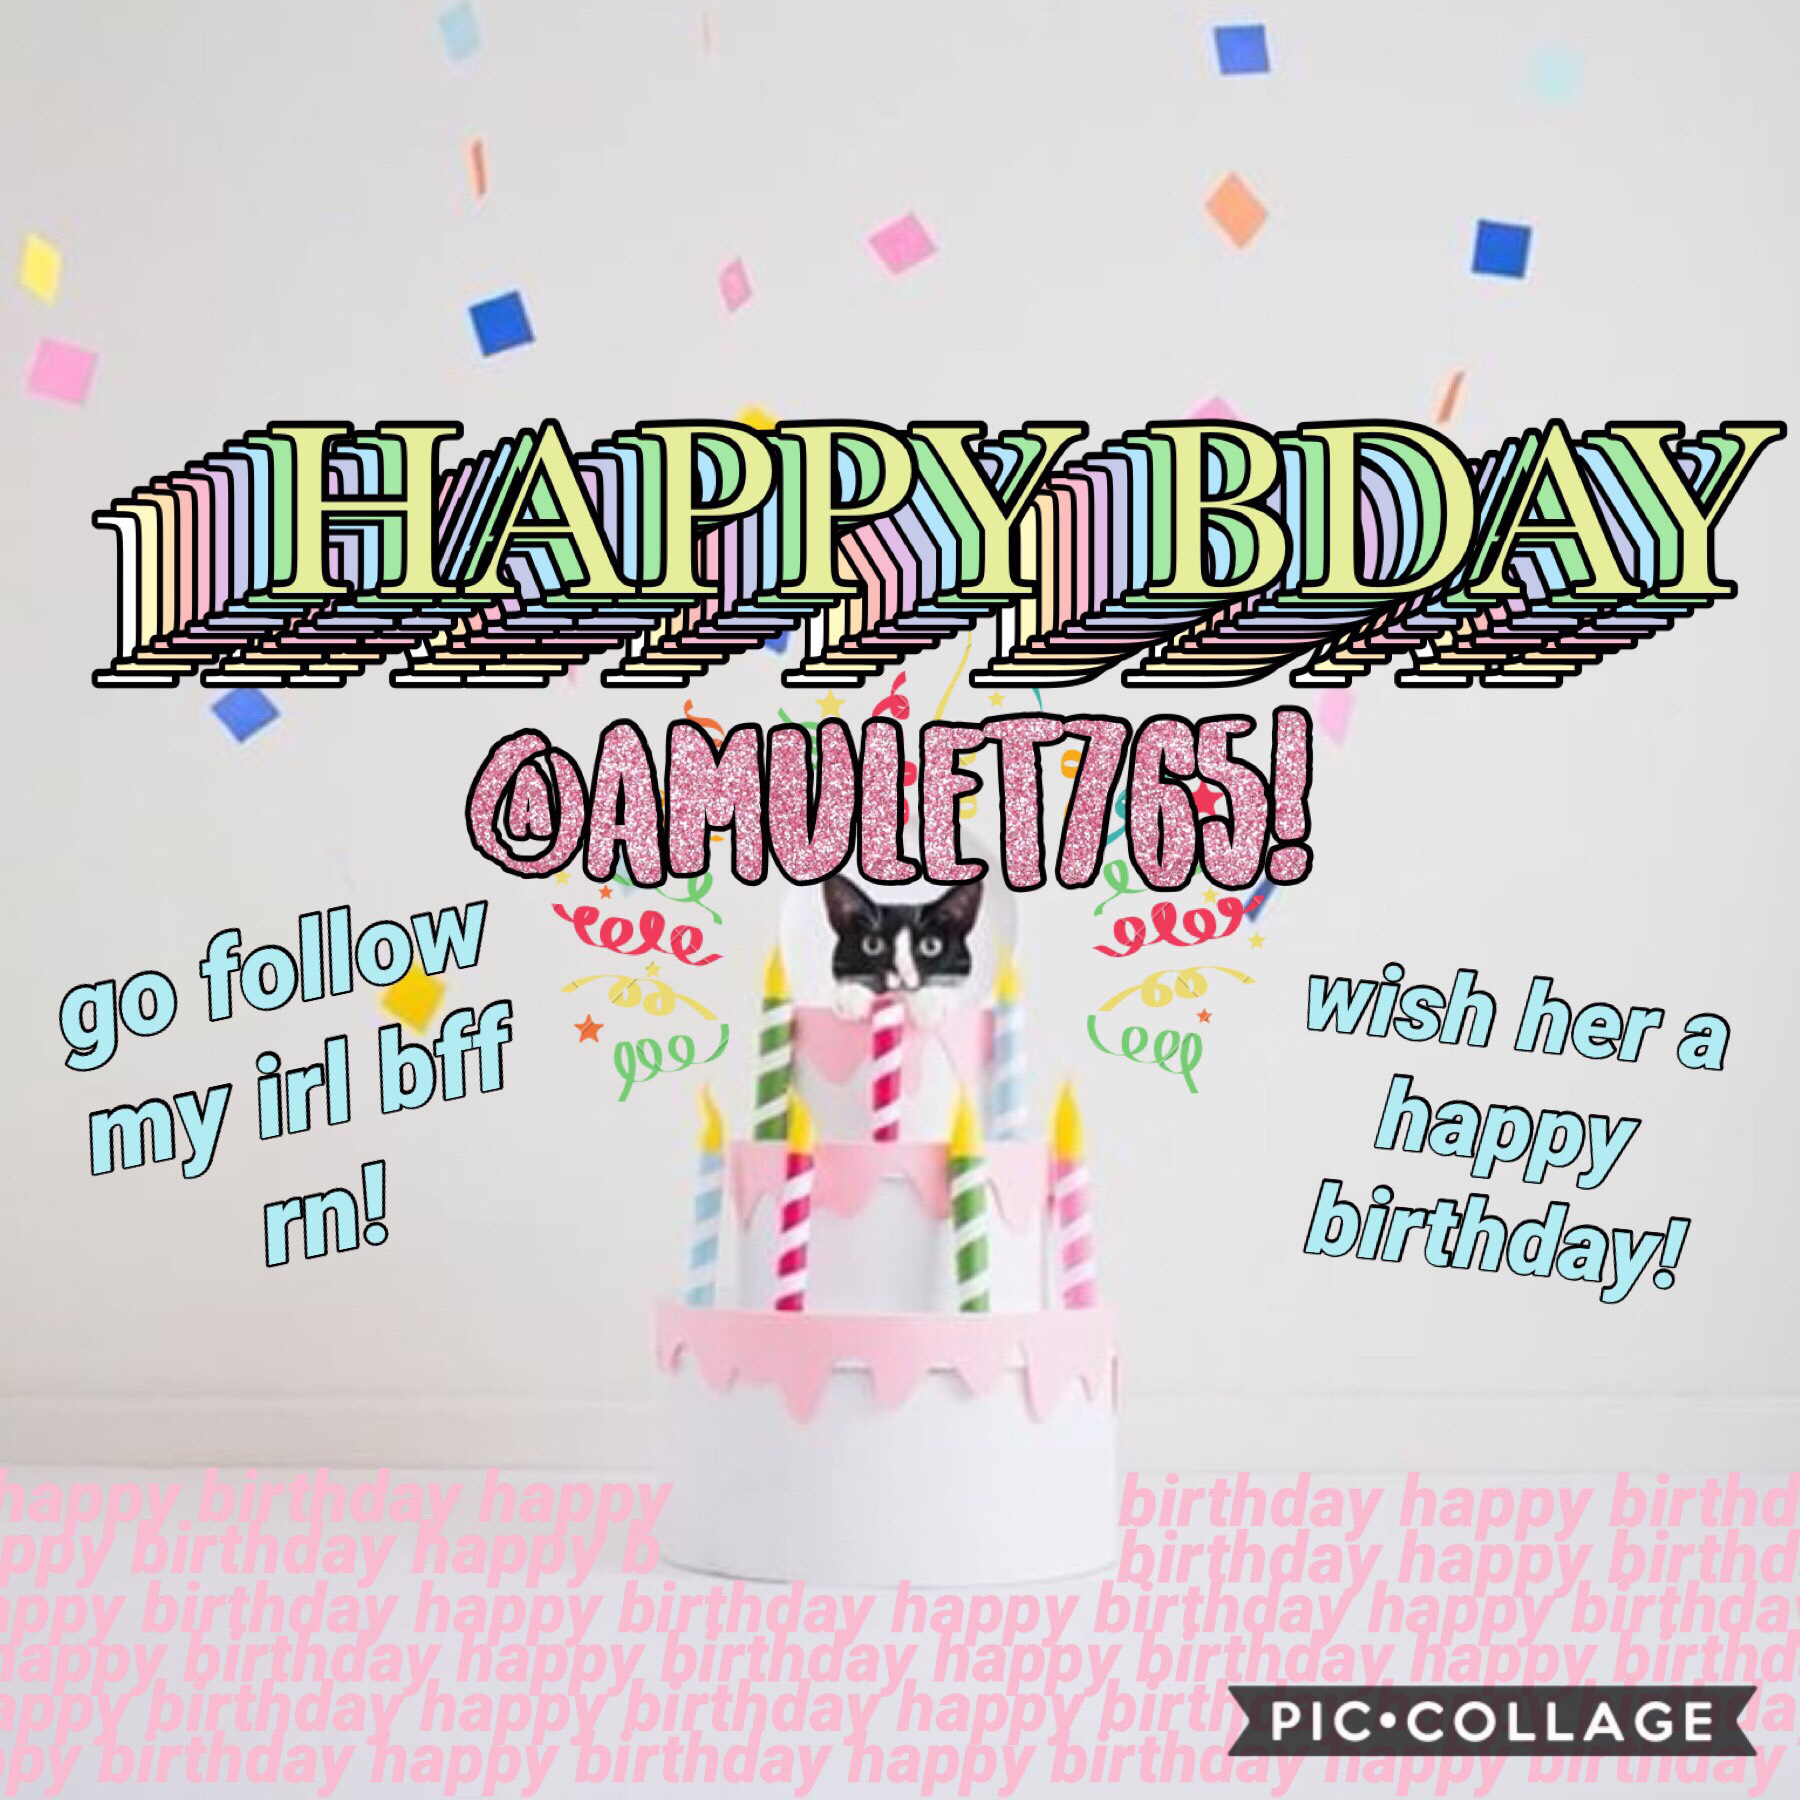 🥳happy birthday my bestie!!🥳 go follow @amulet765 rn if you haven't already and wish her the happiest bday!🎉🌿 (17.2.19)